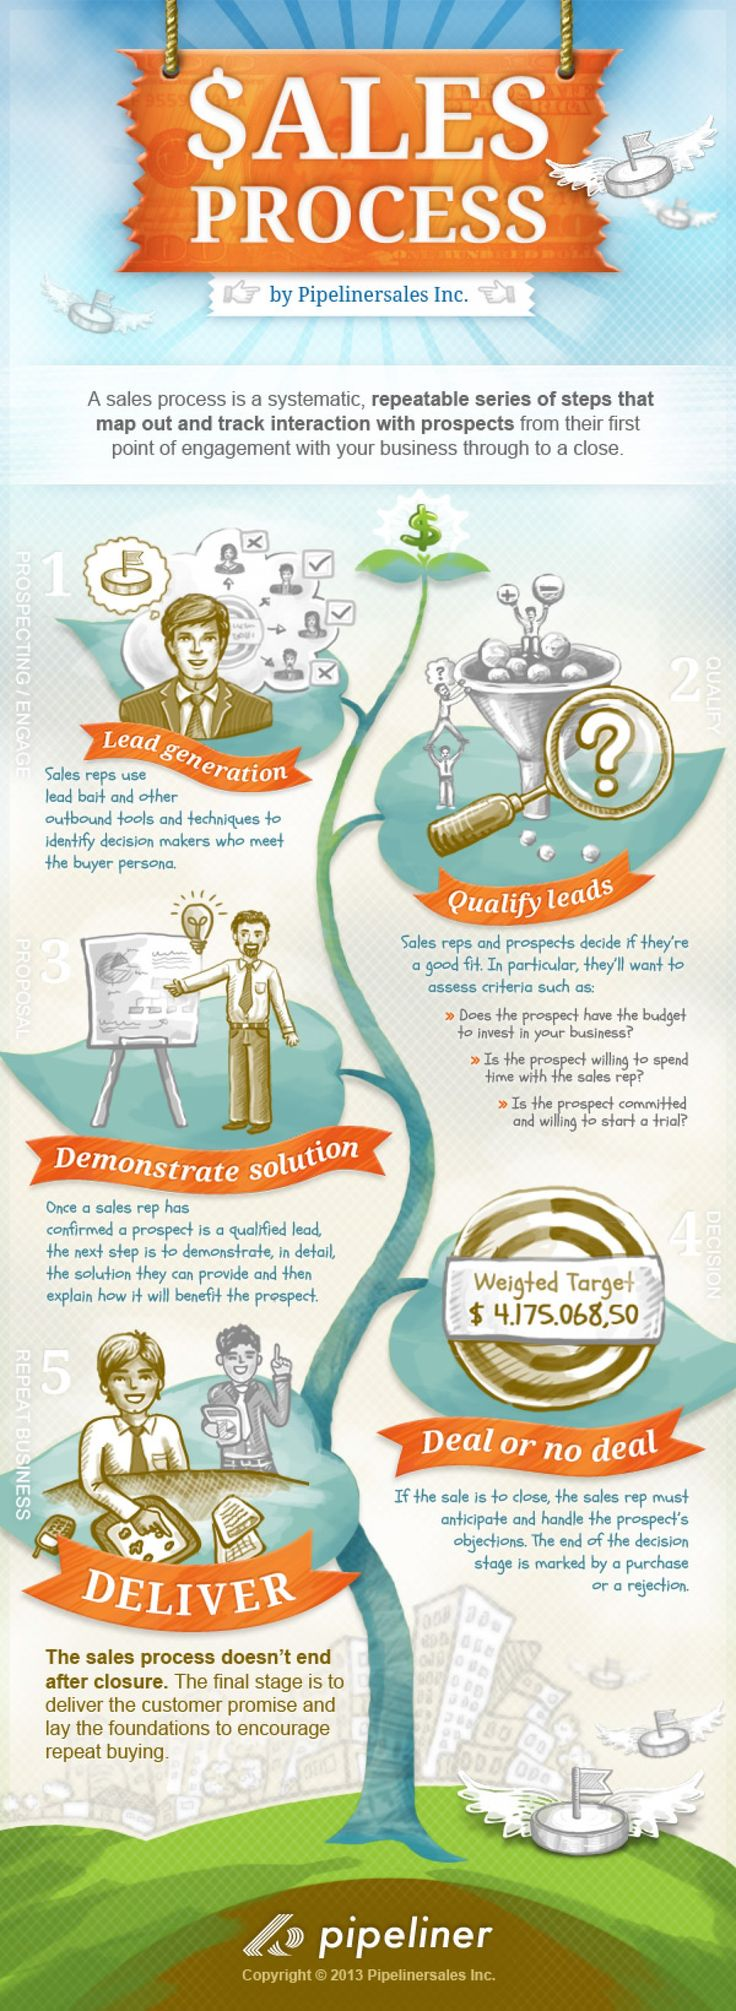 5 Crucial Sales Process Steps Explained Infographic